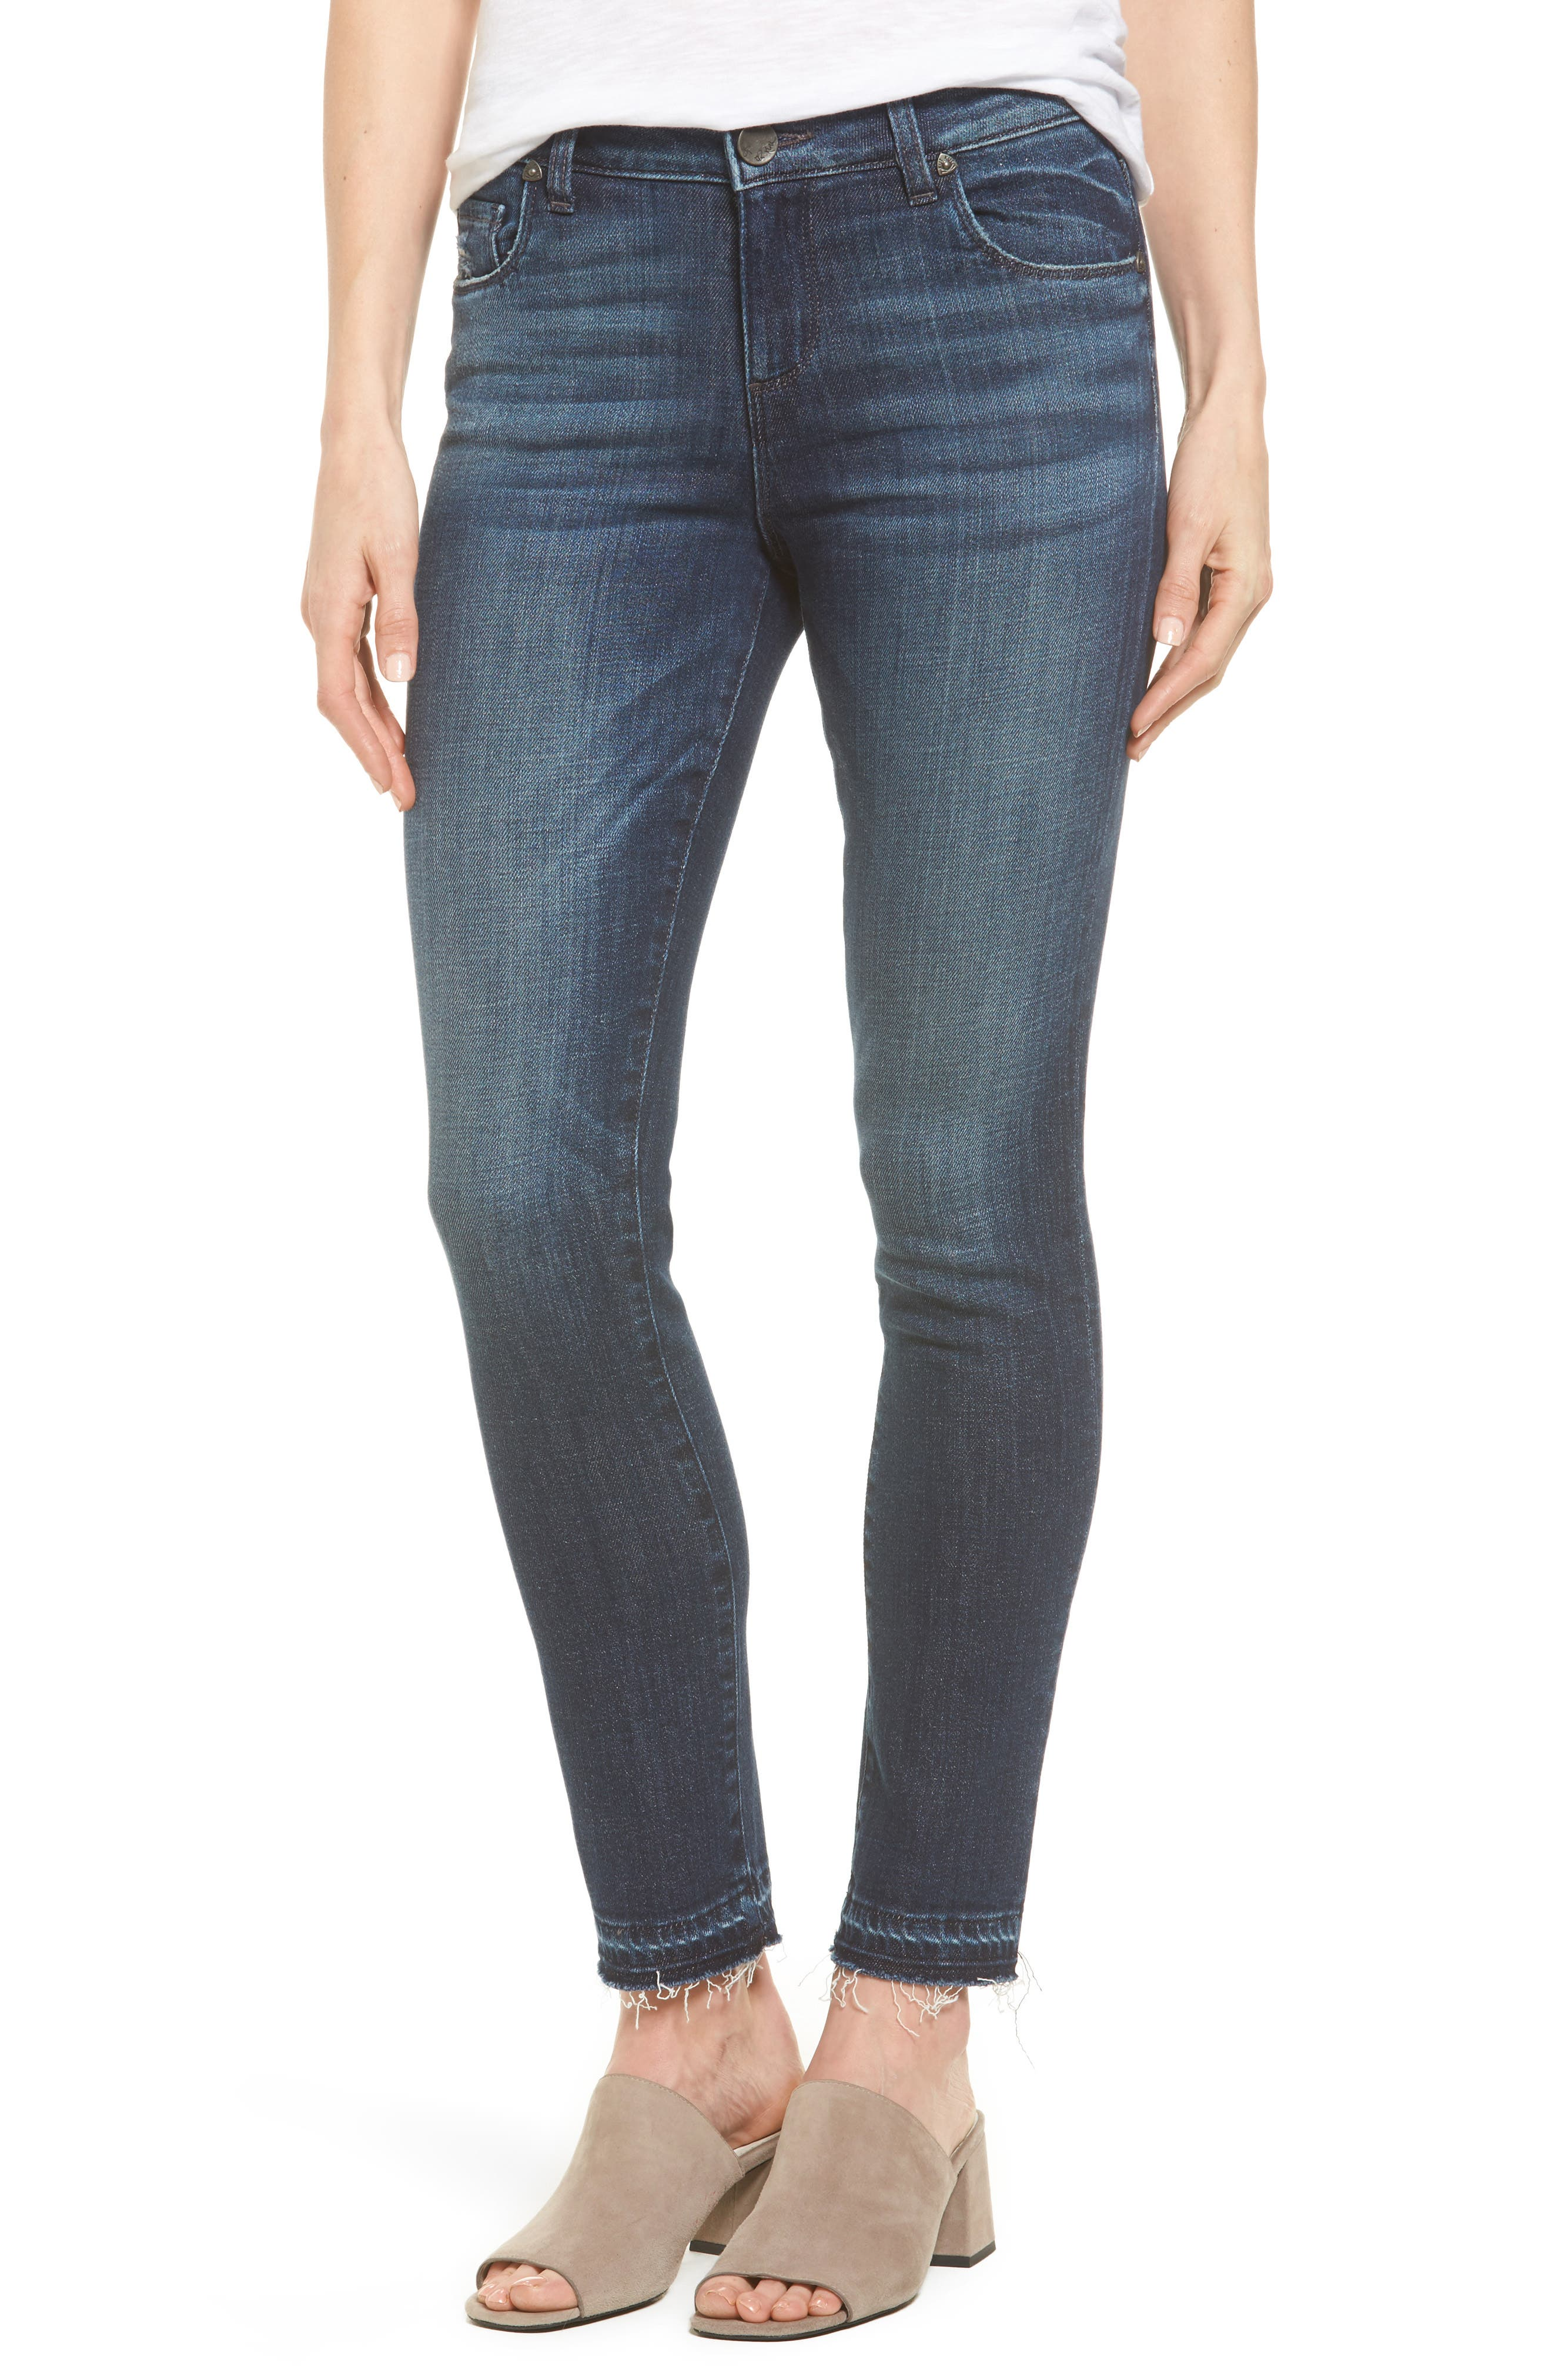 Reese Release Hem Ankle Jeans,                             Main thumbnail 1, color,                             428